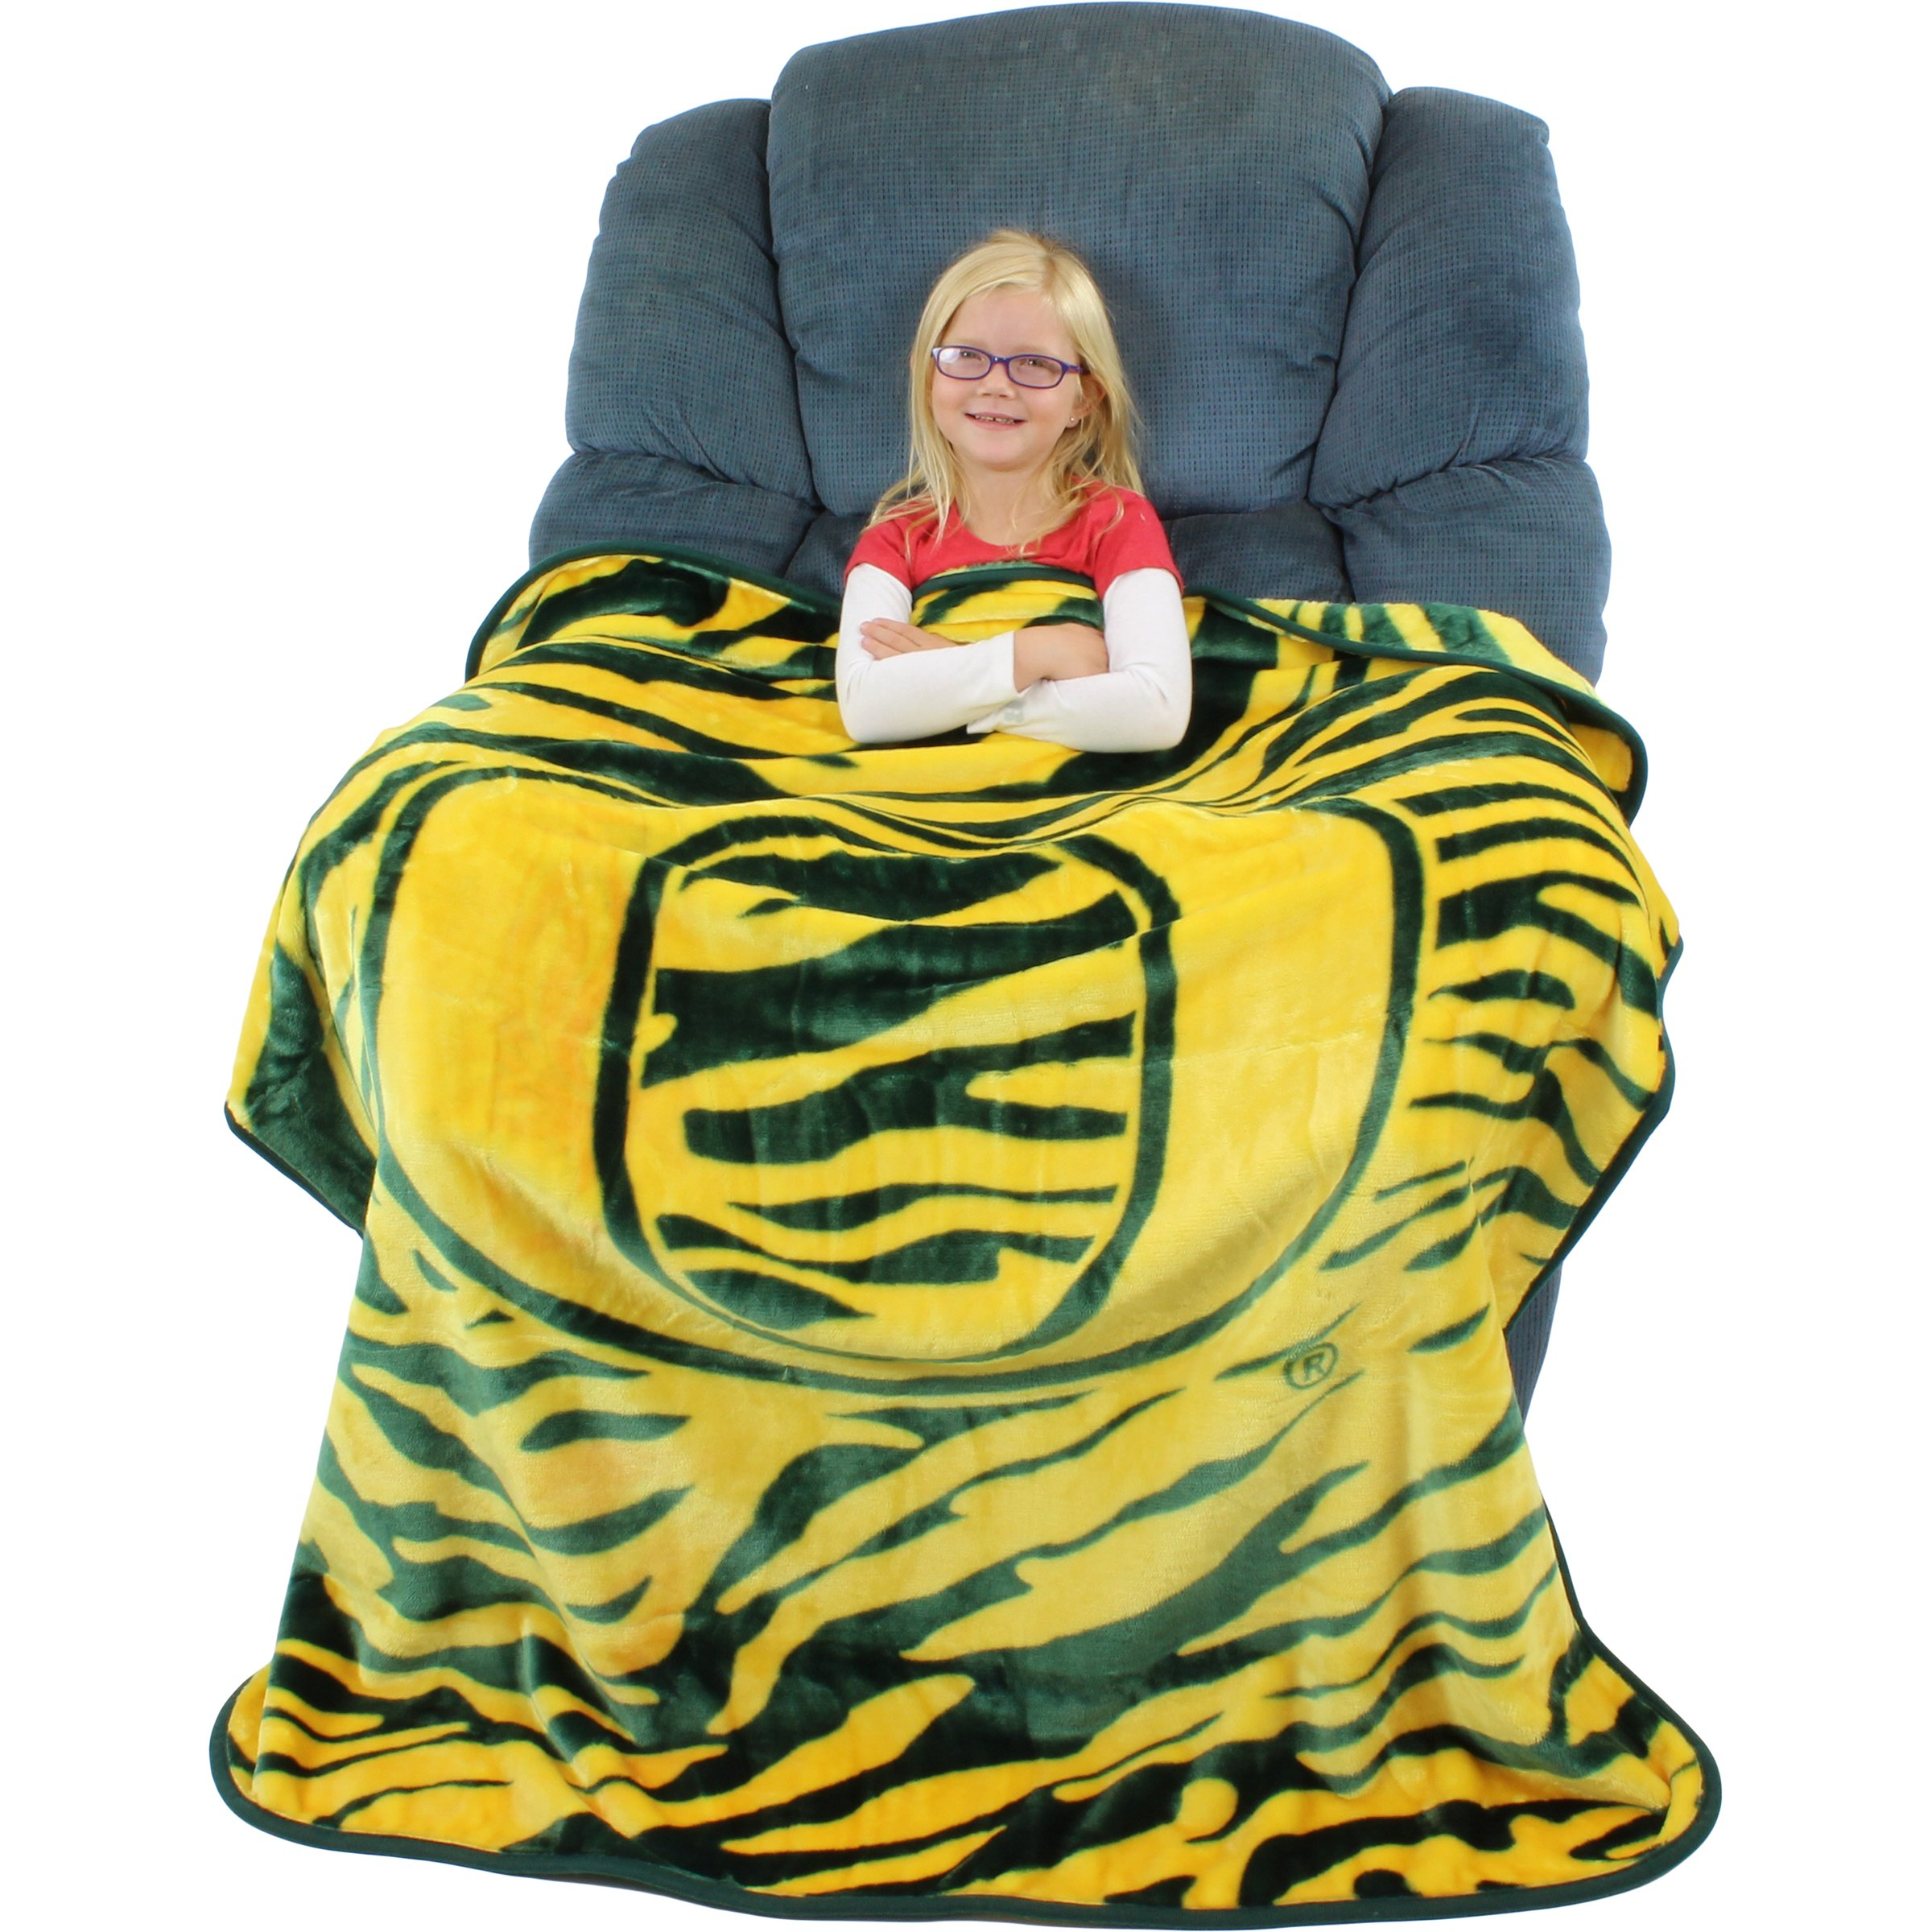 College Covers Raschel Throw Blanket, 50'' x 60'', Oregon Ducks by College Covers